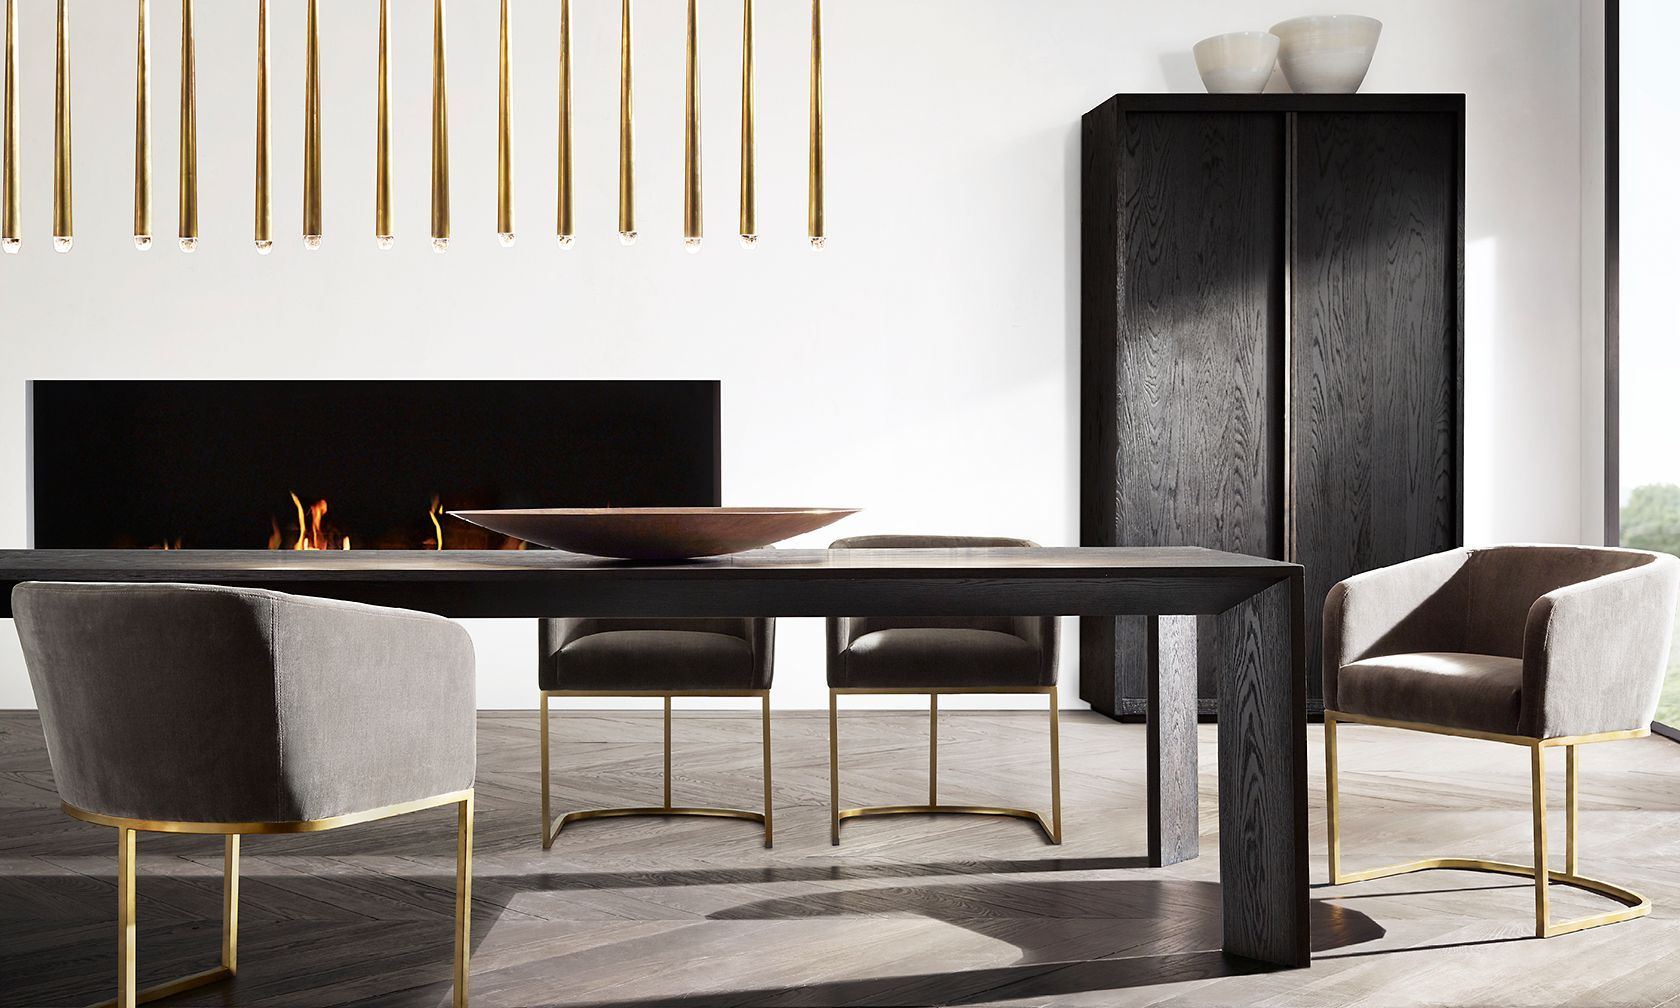 Introducing The Arles Dining Table Collection Restoration Hardware - Restoration hardware modern dining table